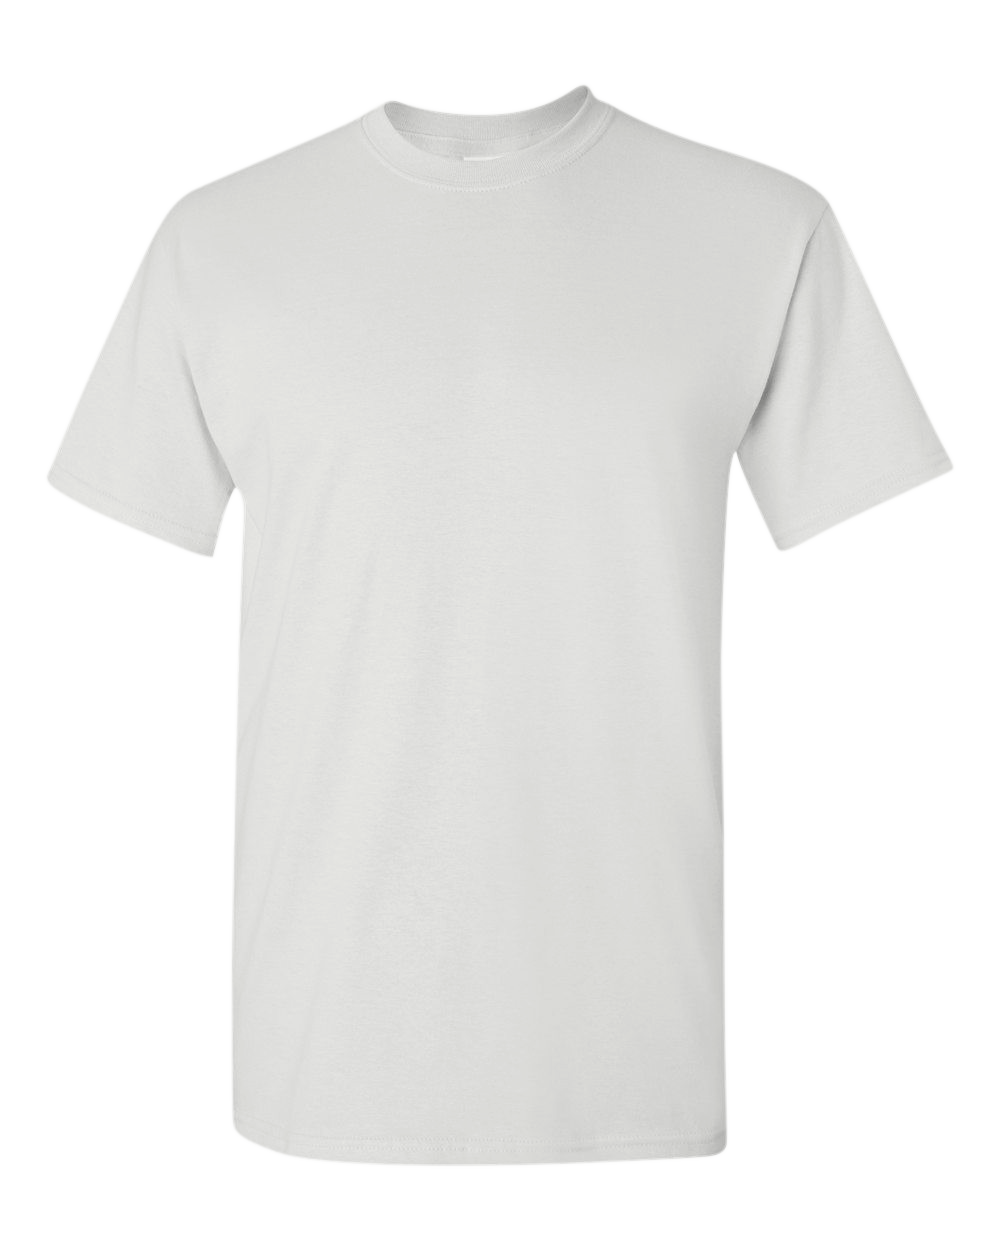 a2a3d84b 'A picture of a American Apparel Organic Youth Fine Jersey Short Sleeve  Tshirt, ready. '